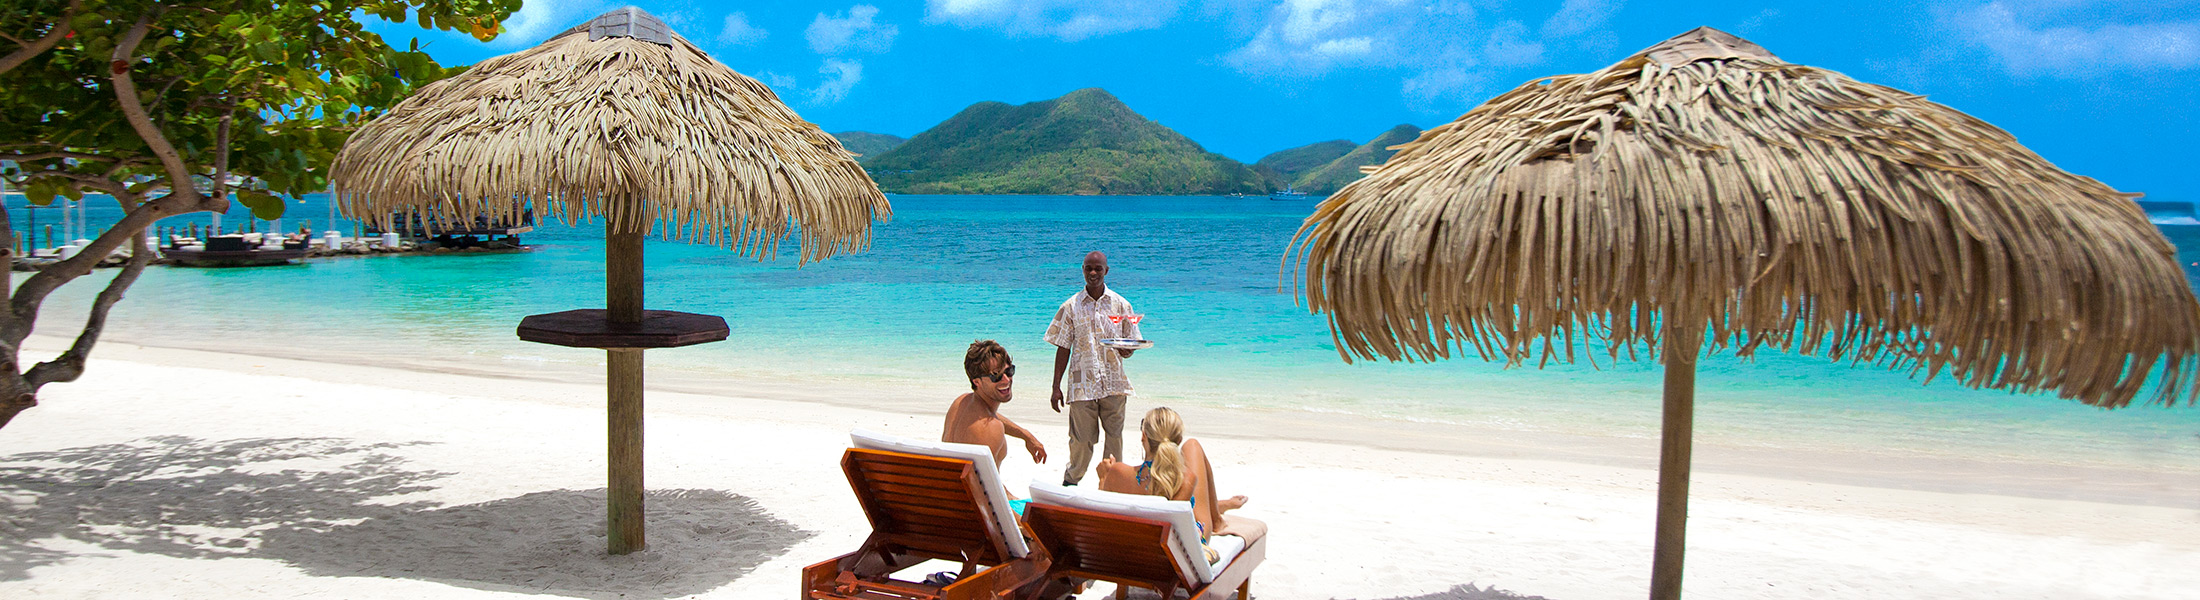 Butler service on the beach at Sandals Grande St Lucian